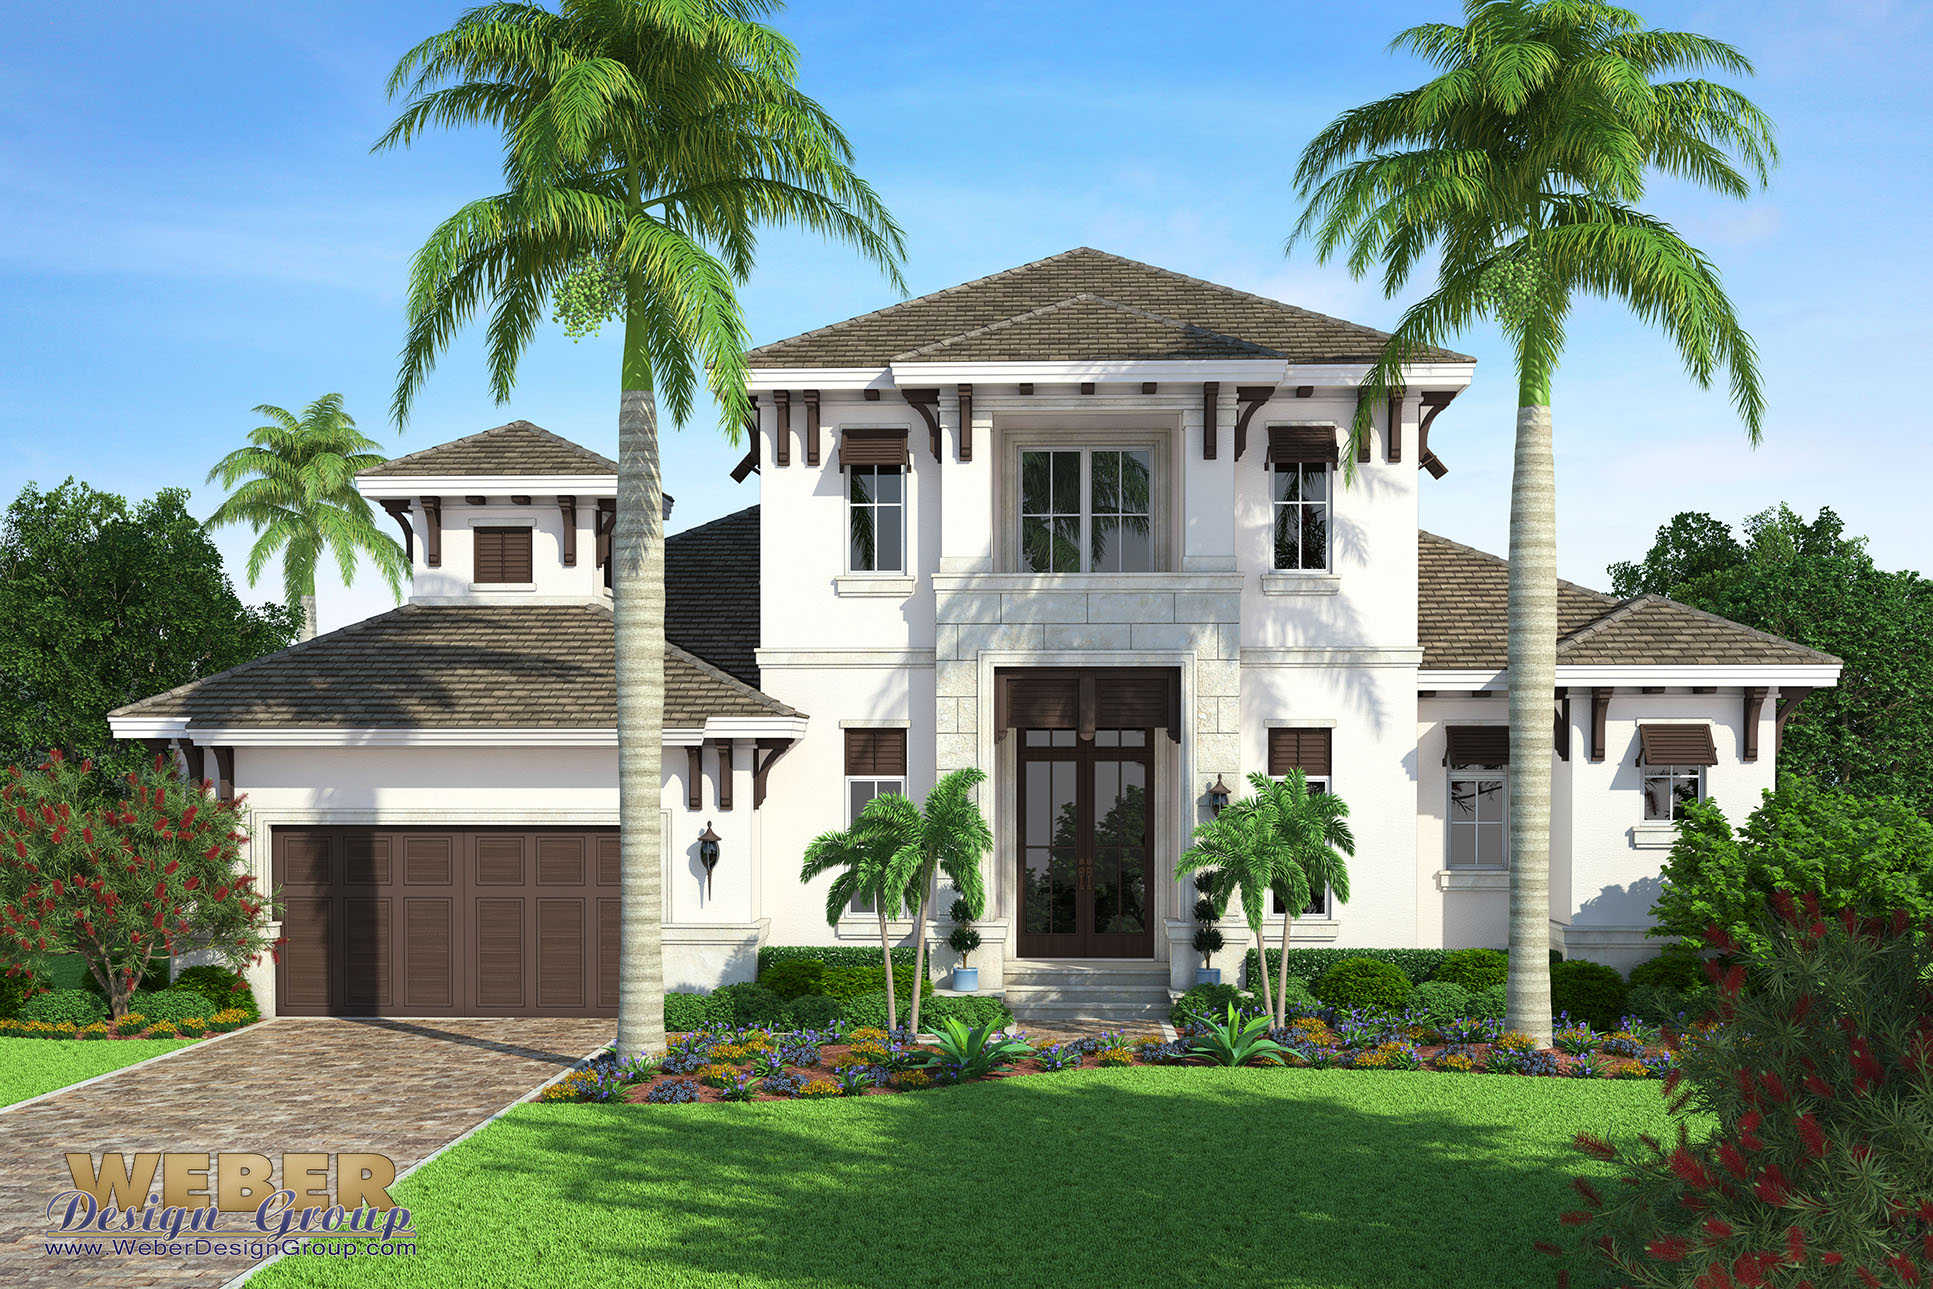 West indies home plan edgewater model weber design group for Weber design